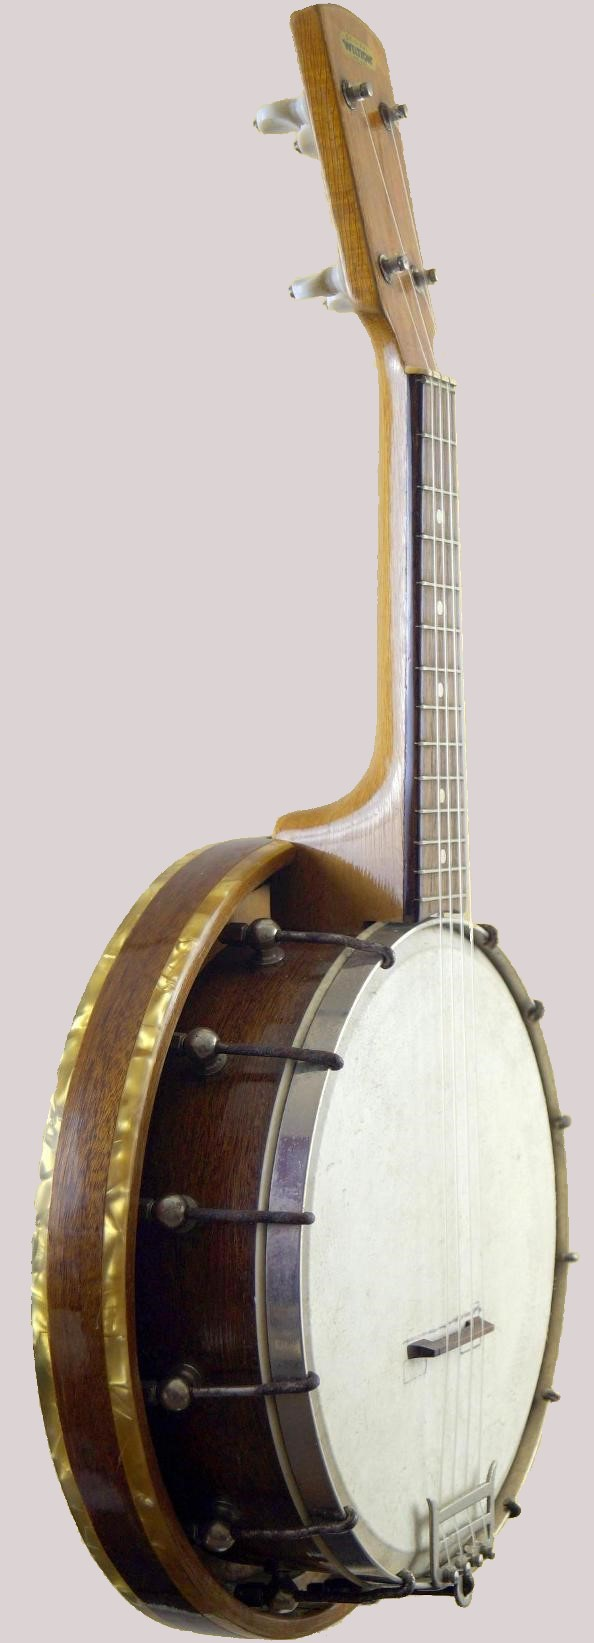 east german banjolin banjo mandolin at Ukulele corner